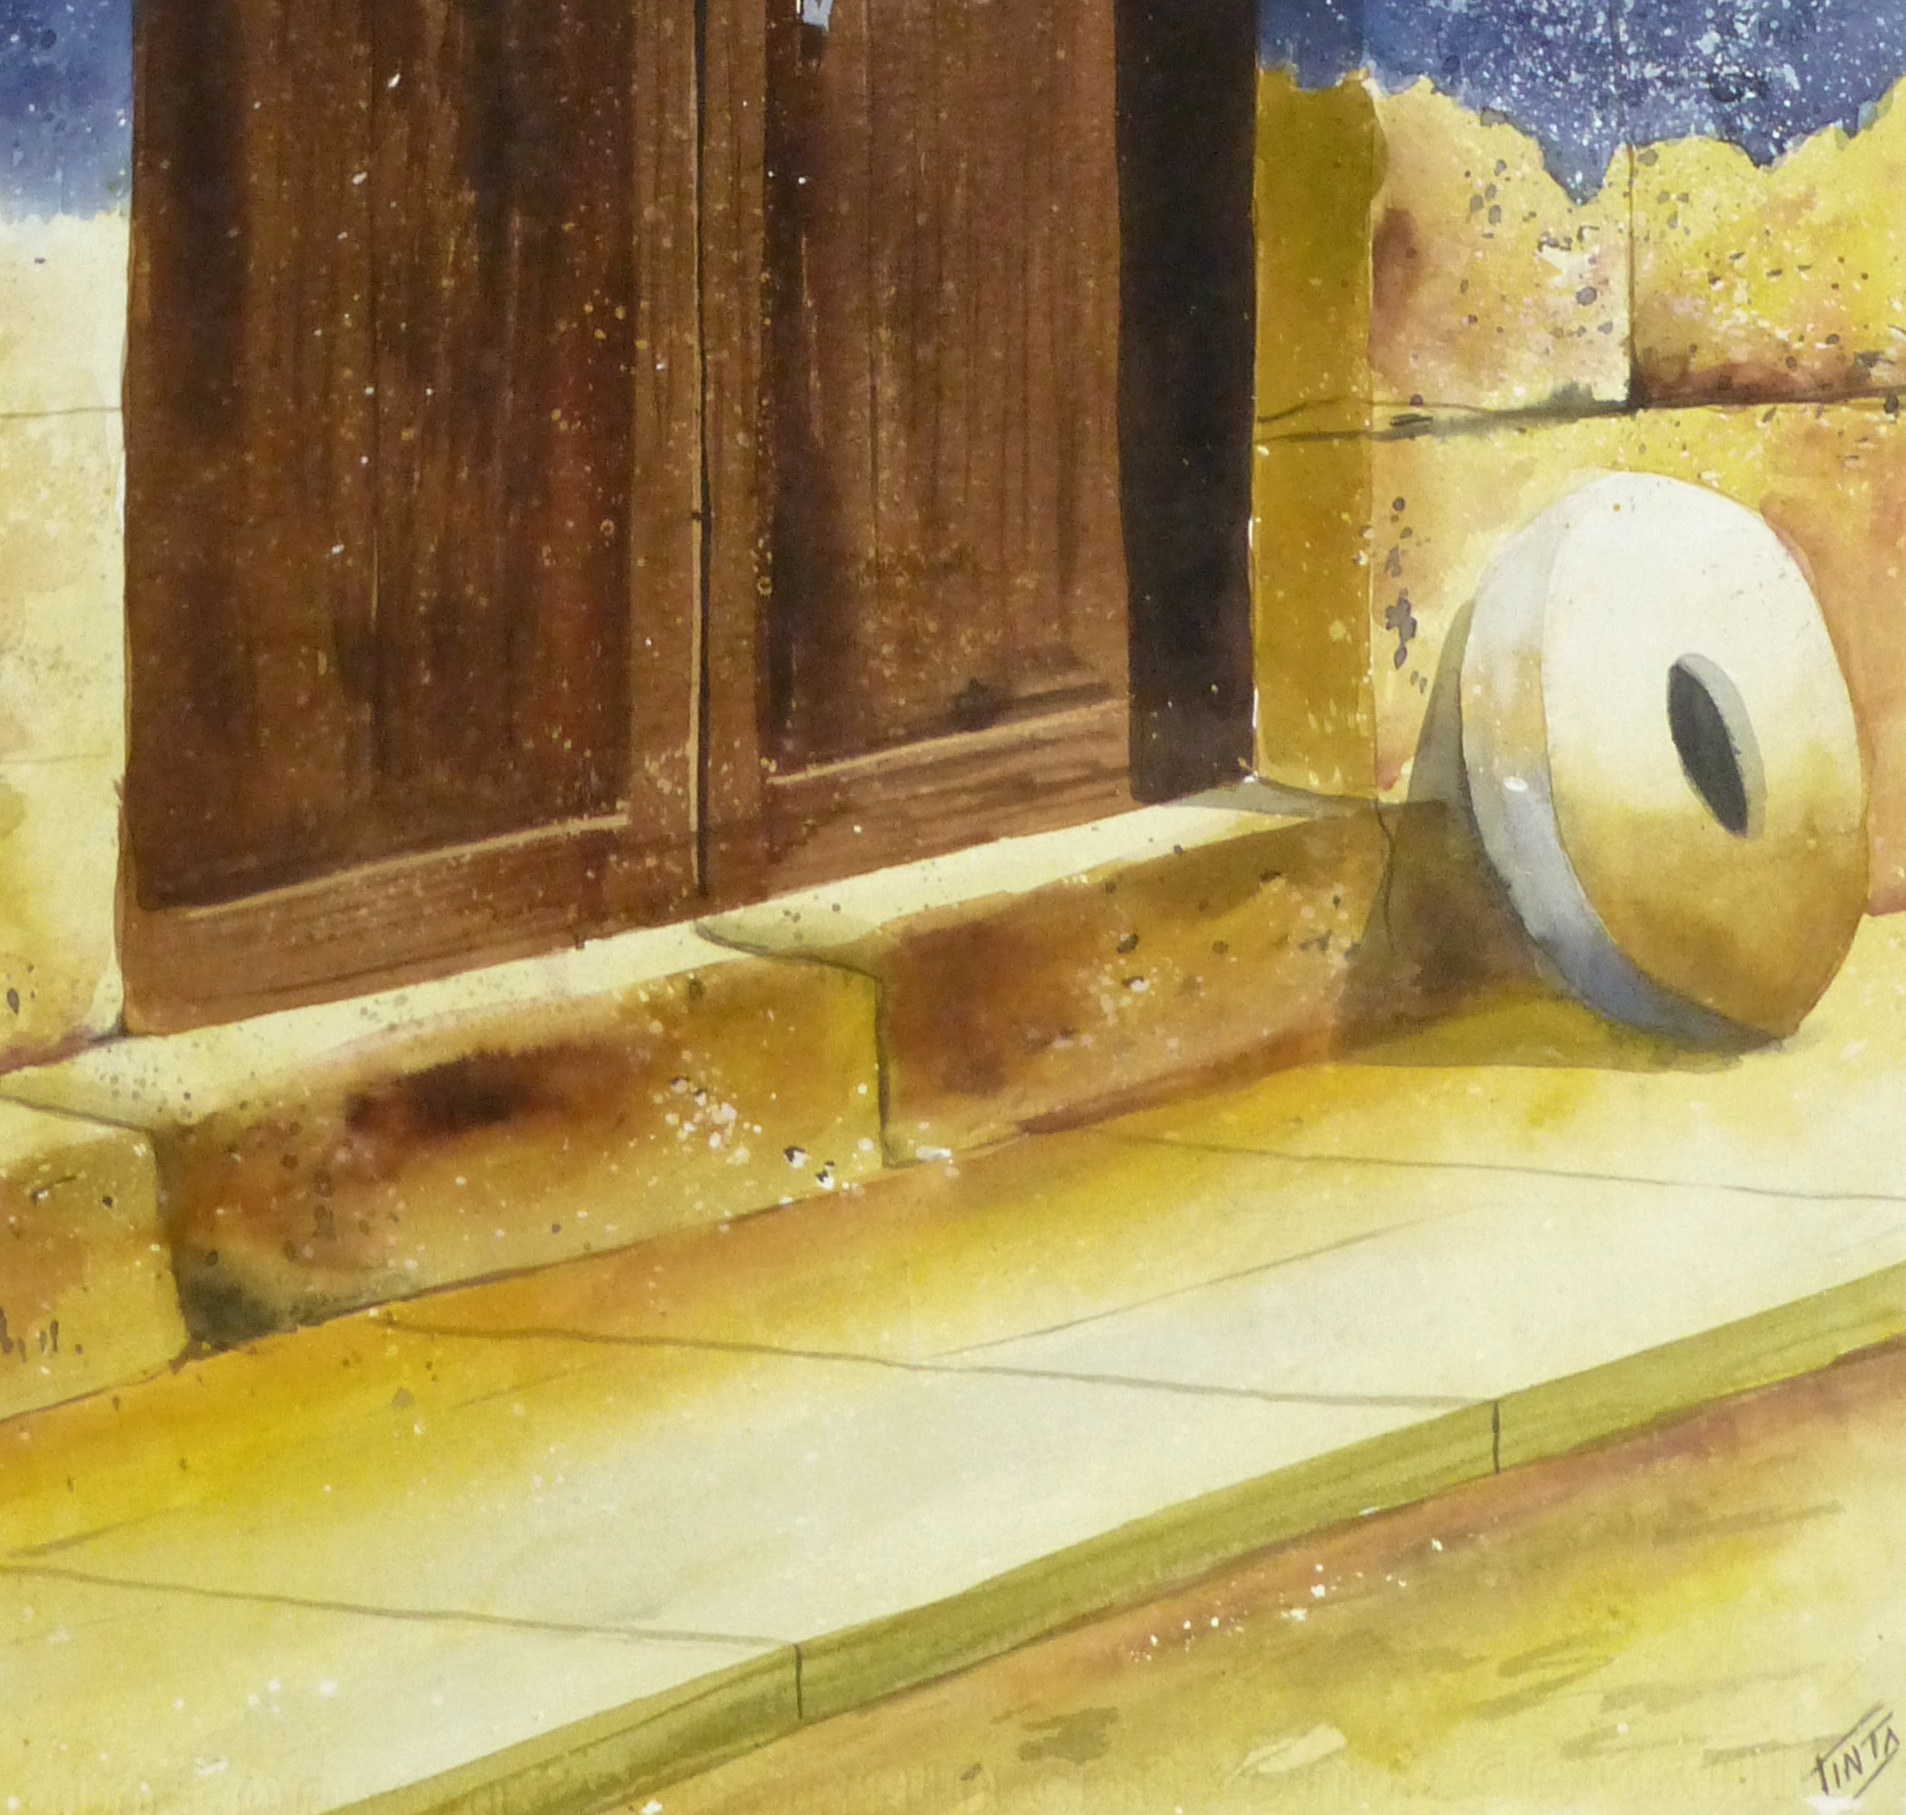 Watercolor Landscape - Rustic Entryway, 2011-detail-10534M